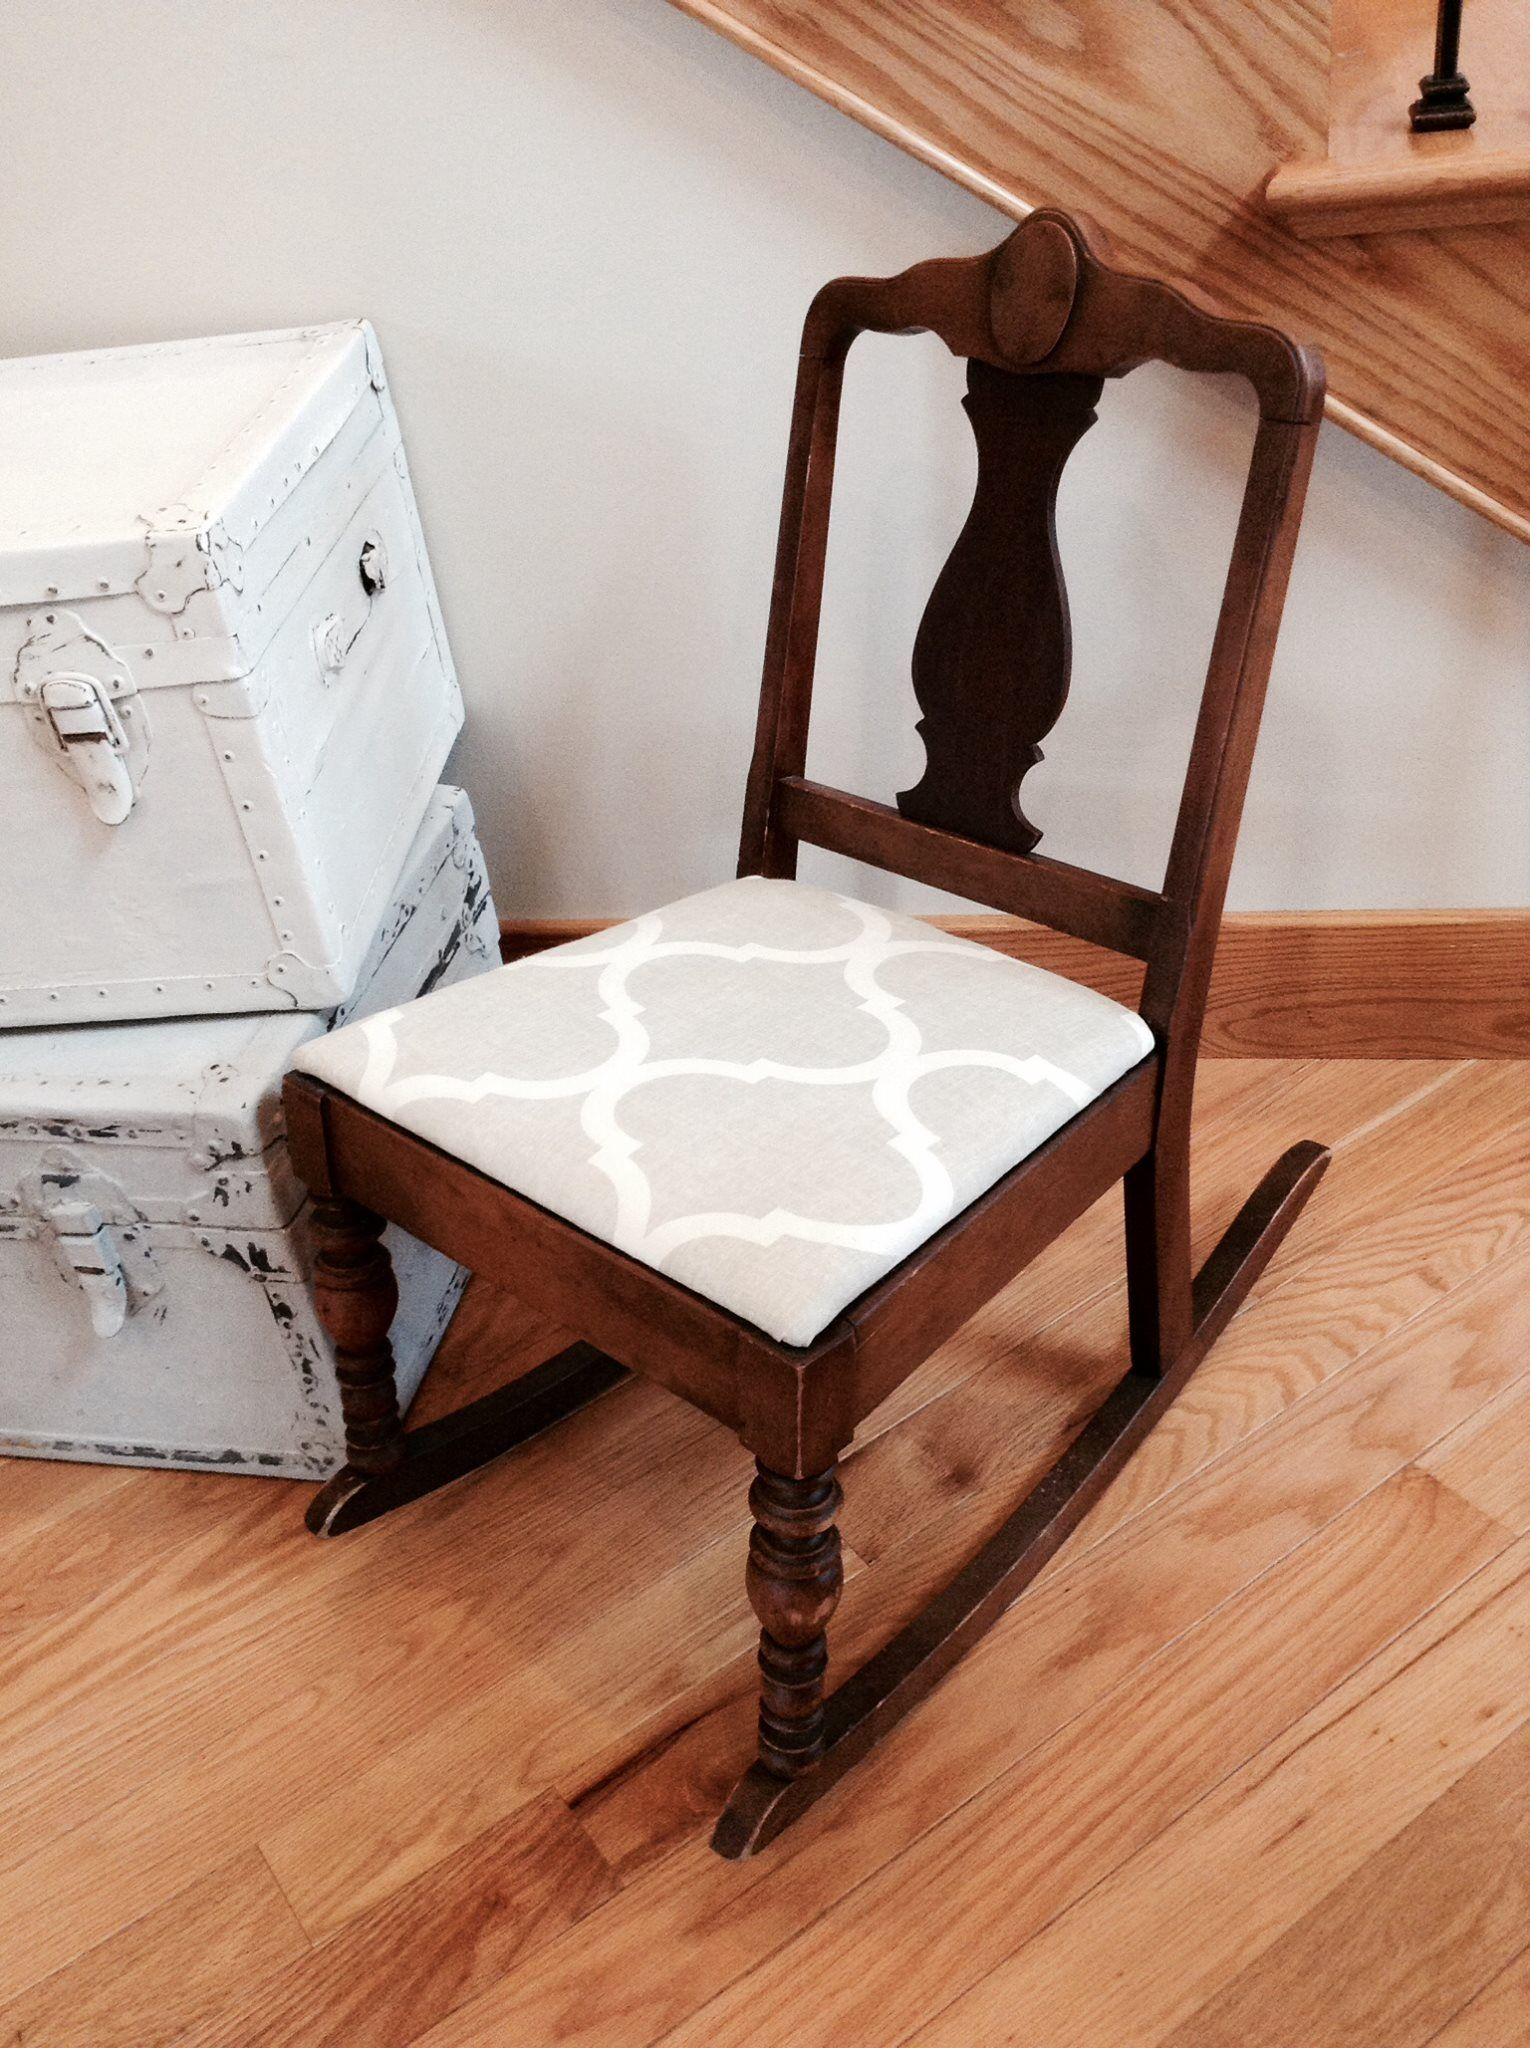 Antique sewing rocking chair - Small Antique Sewing Rocking Chair Rocker Reupholstered In A Tan And White Lattice Print